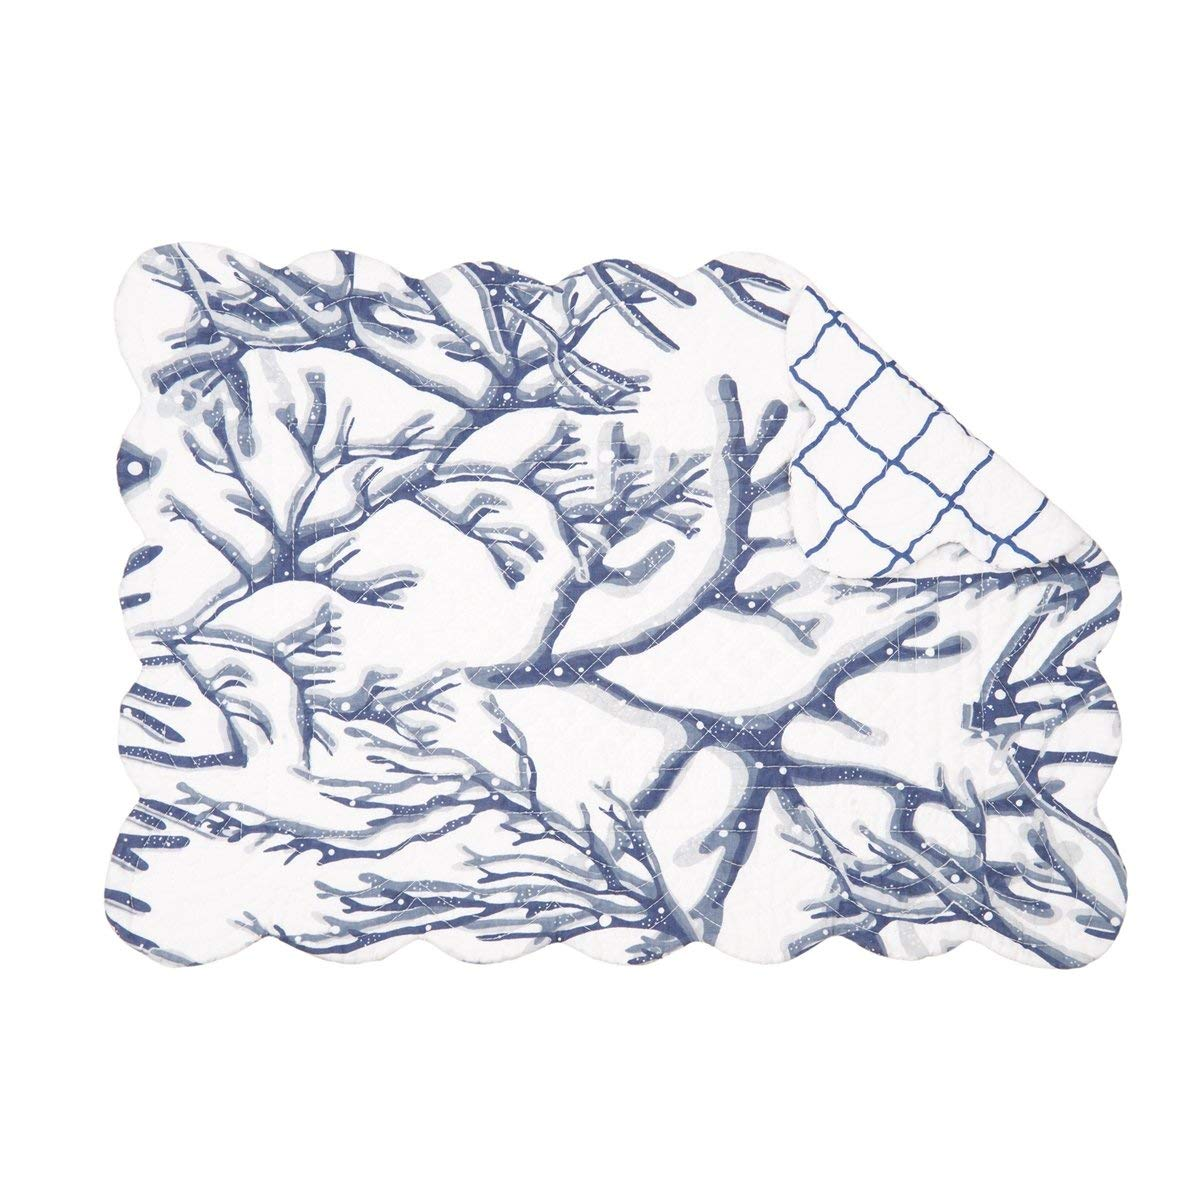 C&F Home Set of 4 Pcs, 13x19 Quilted Placemat,Oceanaire